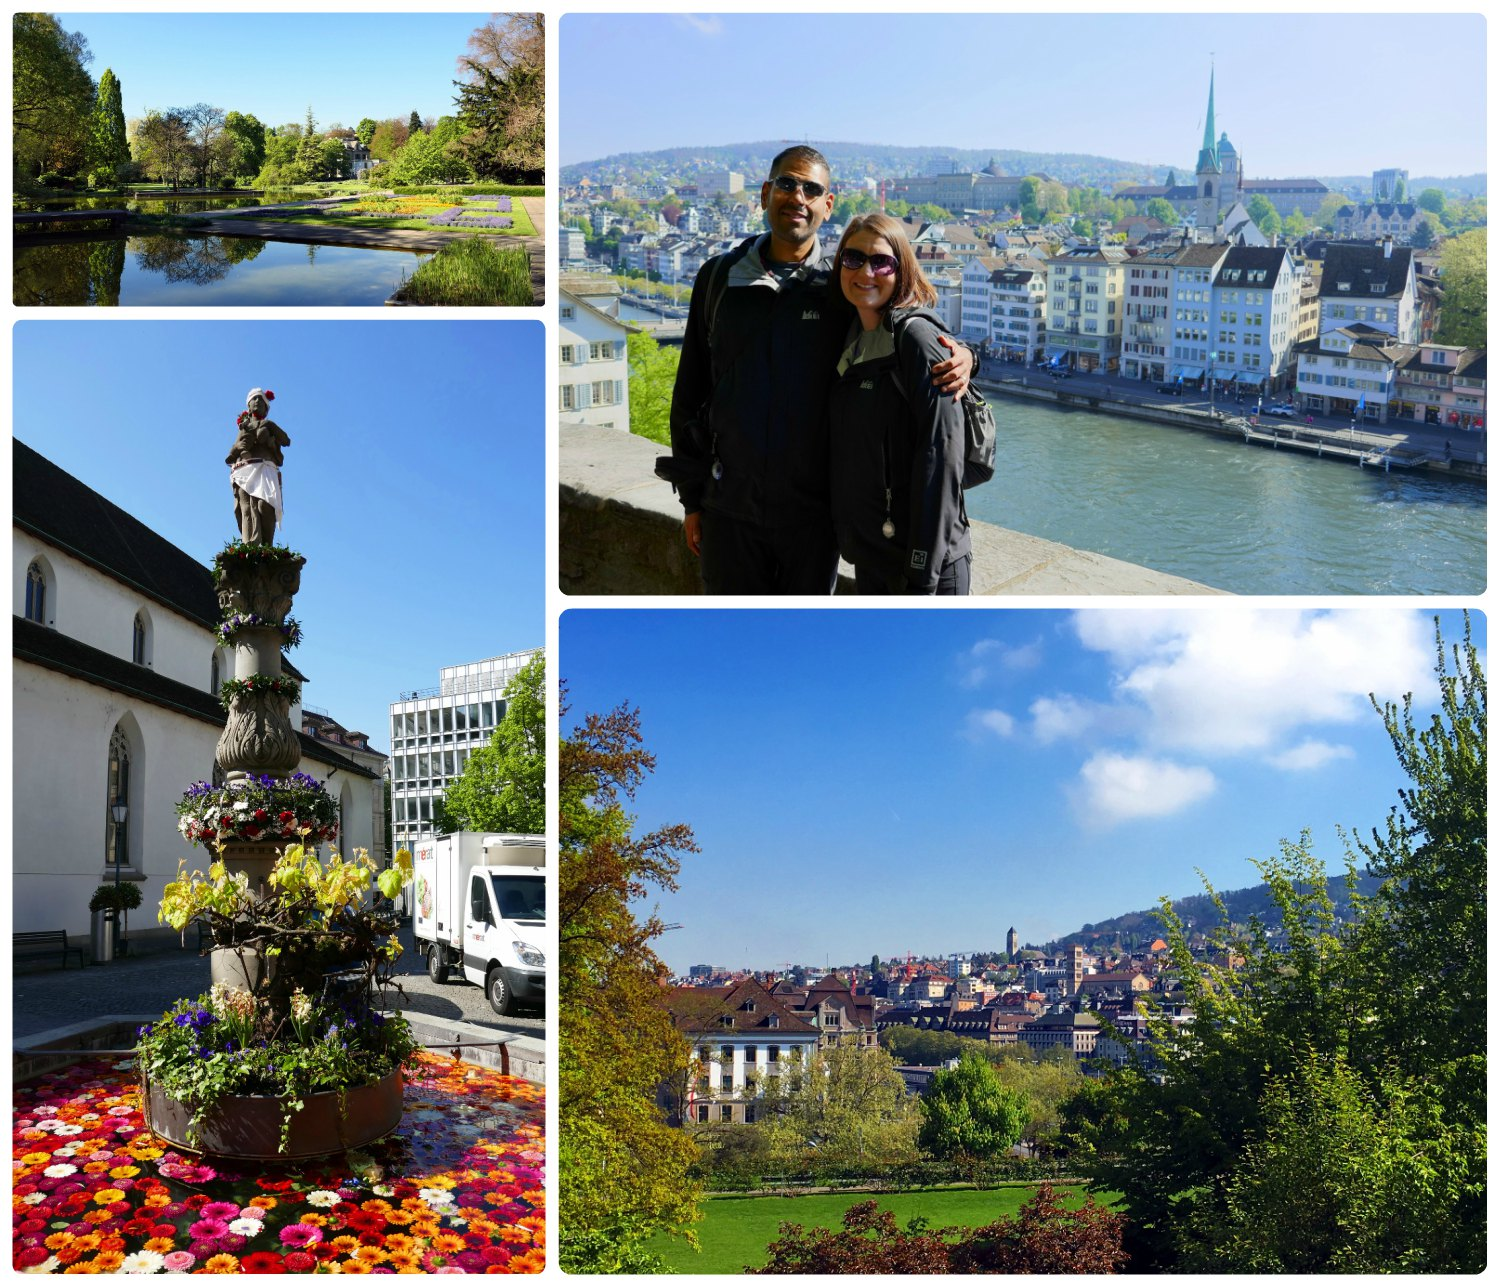 Clockwise (from the top): Belvoirpark Park is one of Zurich's oldest landscaped parks, us at Lindenhof park, another view point from Lindenhof - a popular park for views of the city and the Limmat River, a fountain on Münzplatz filled with flowers from the florist shop nearby.